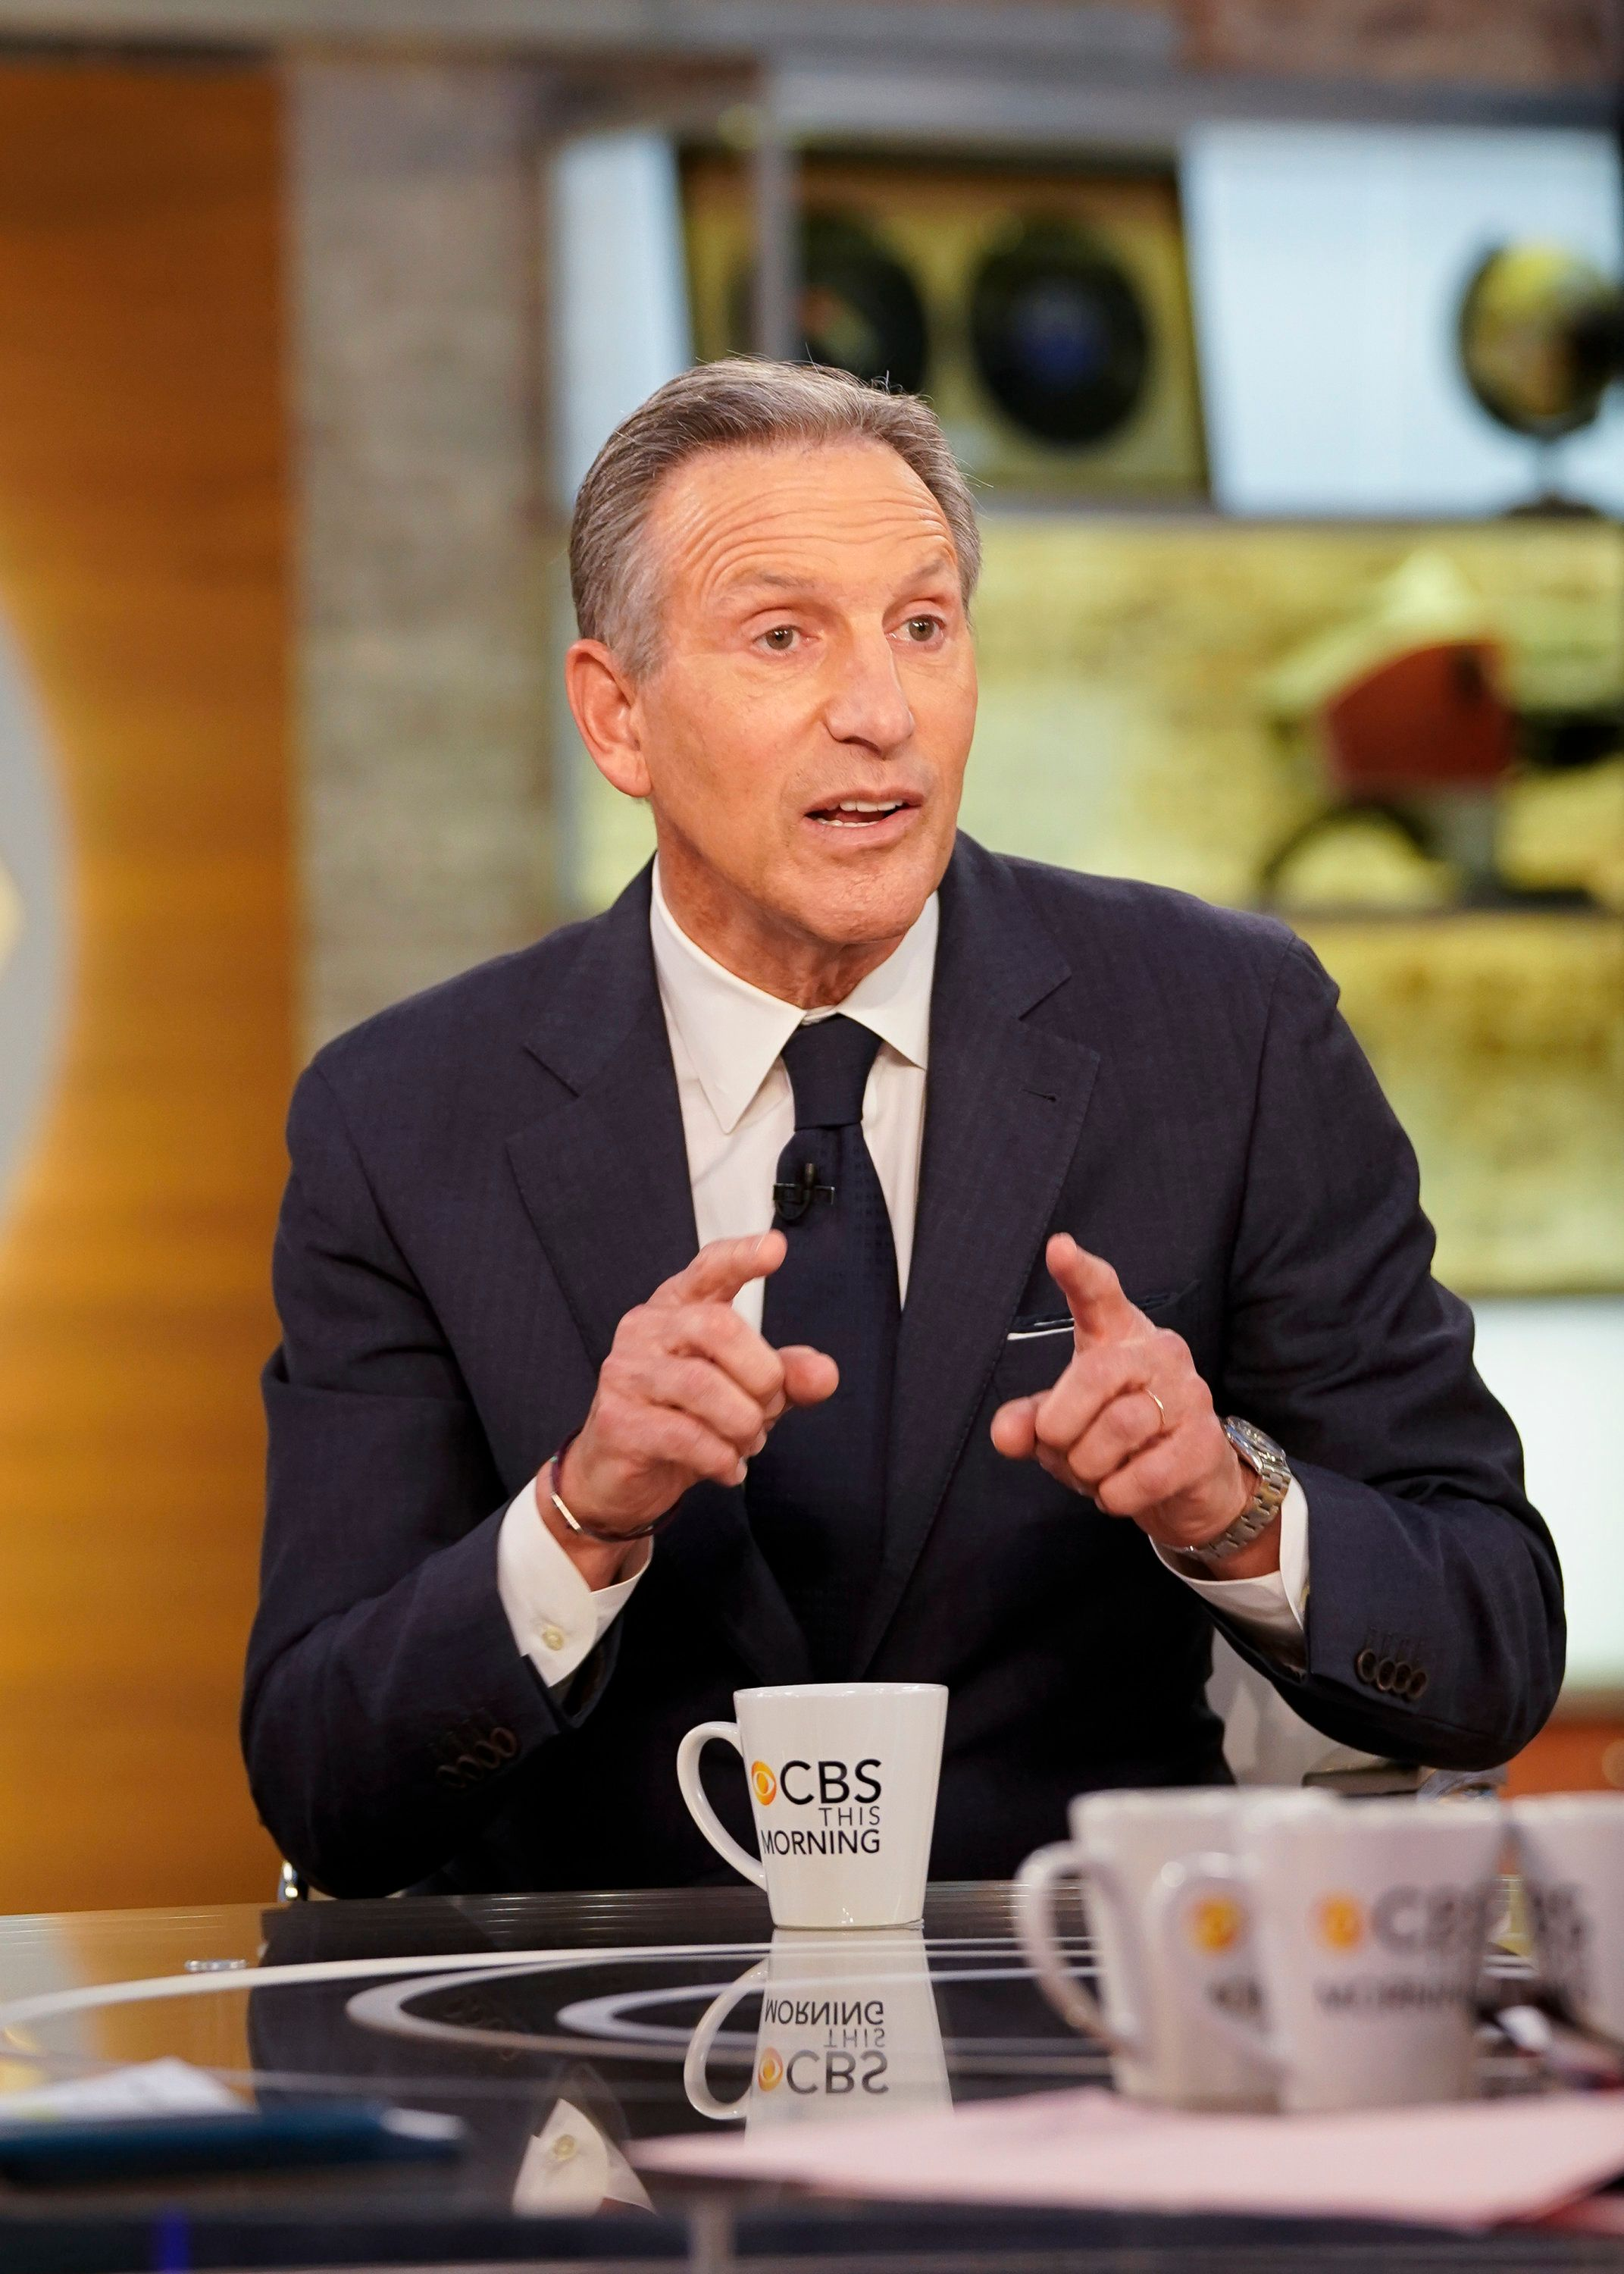 NEW YORK - JANUARY 29: Howard Schultz guest stars on CBS This Morning with Co-Anchors: Norah O'Donell, John Dickerson and Bianna Golodryga. (Photo by Michele Crowe/CBS via Getty Images)